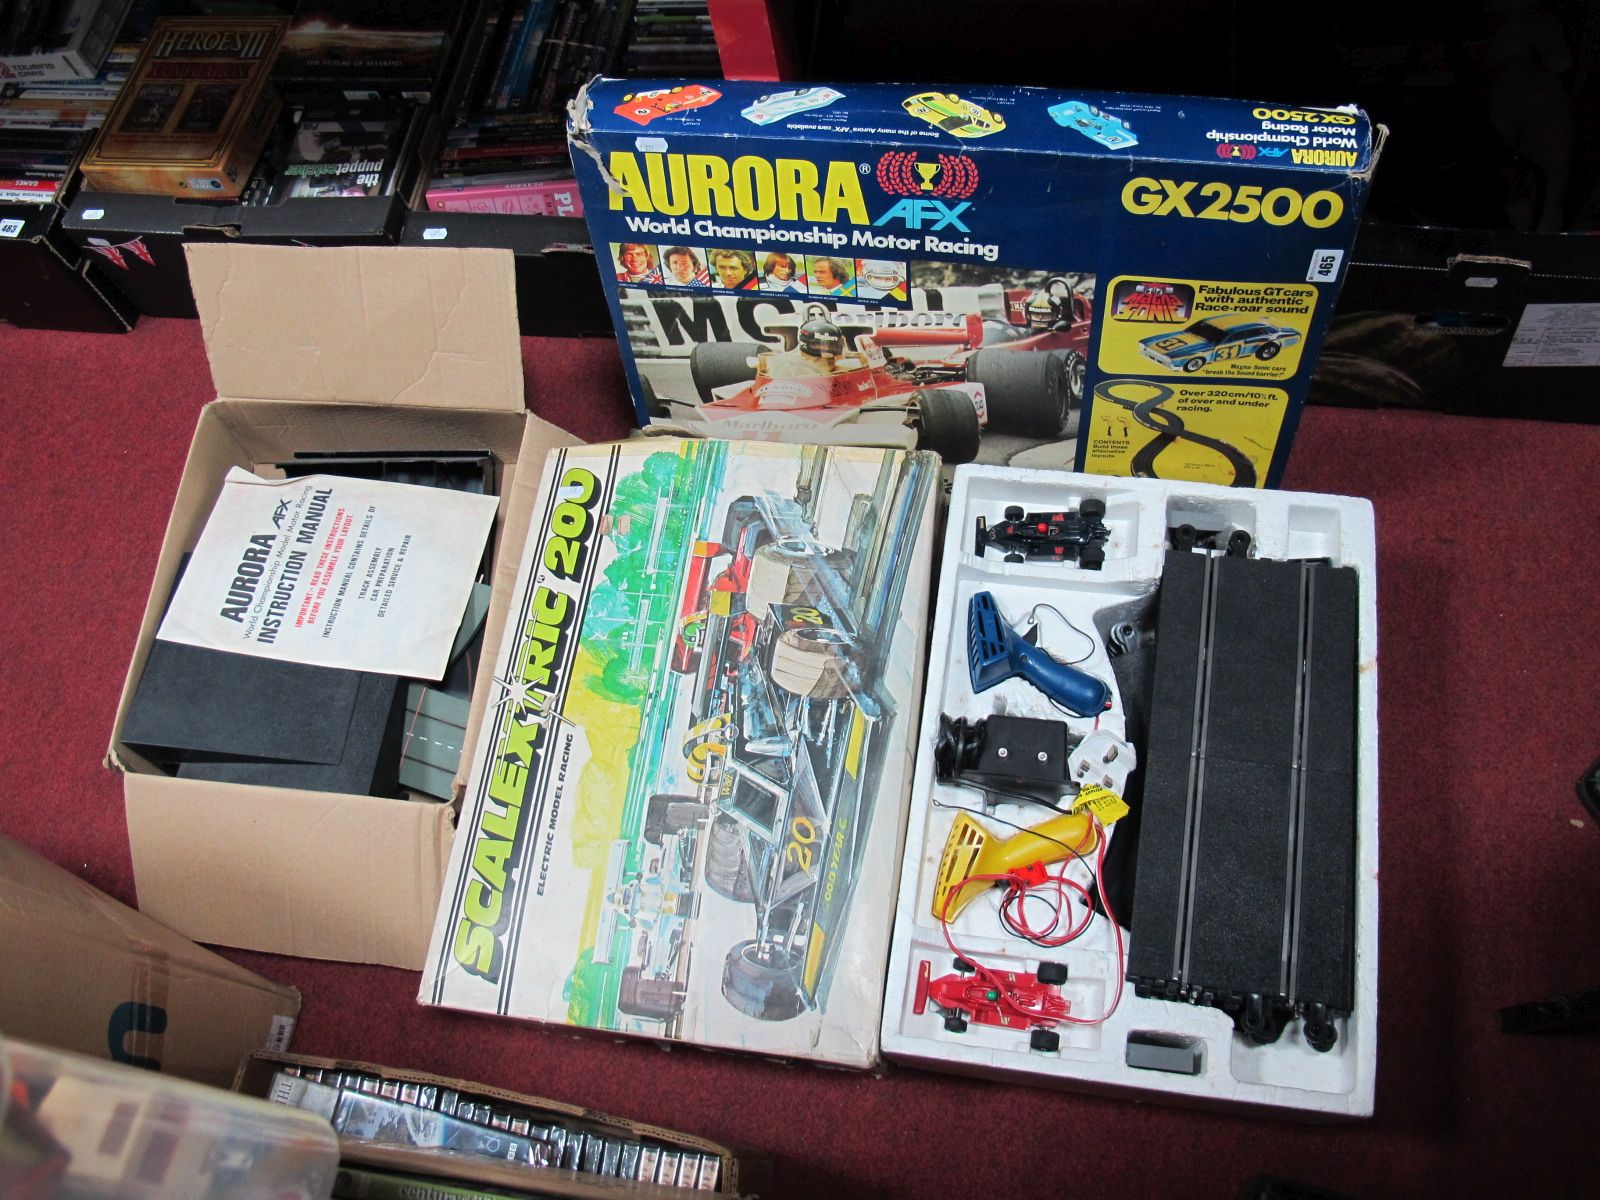 Lot 465 - A Scalextric 200 Set, Aurora set (missing cars) and associated items.